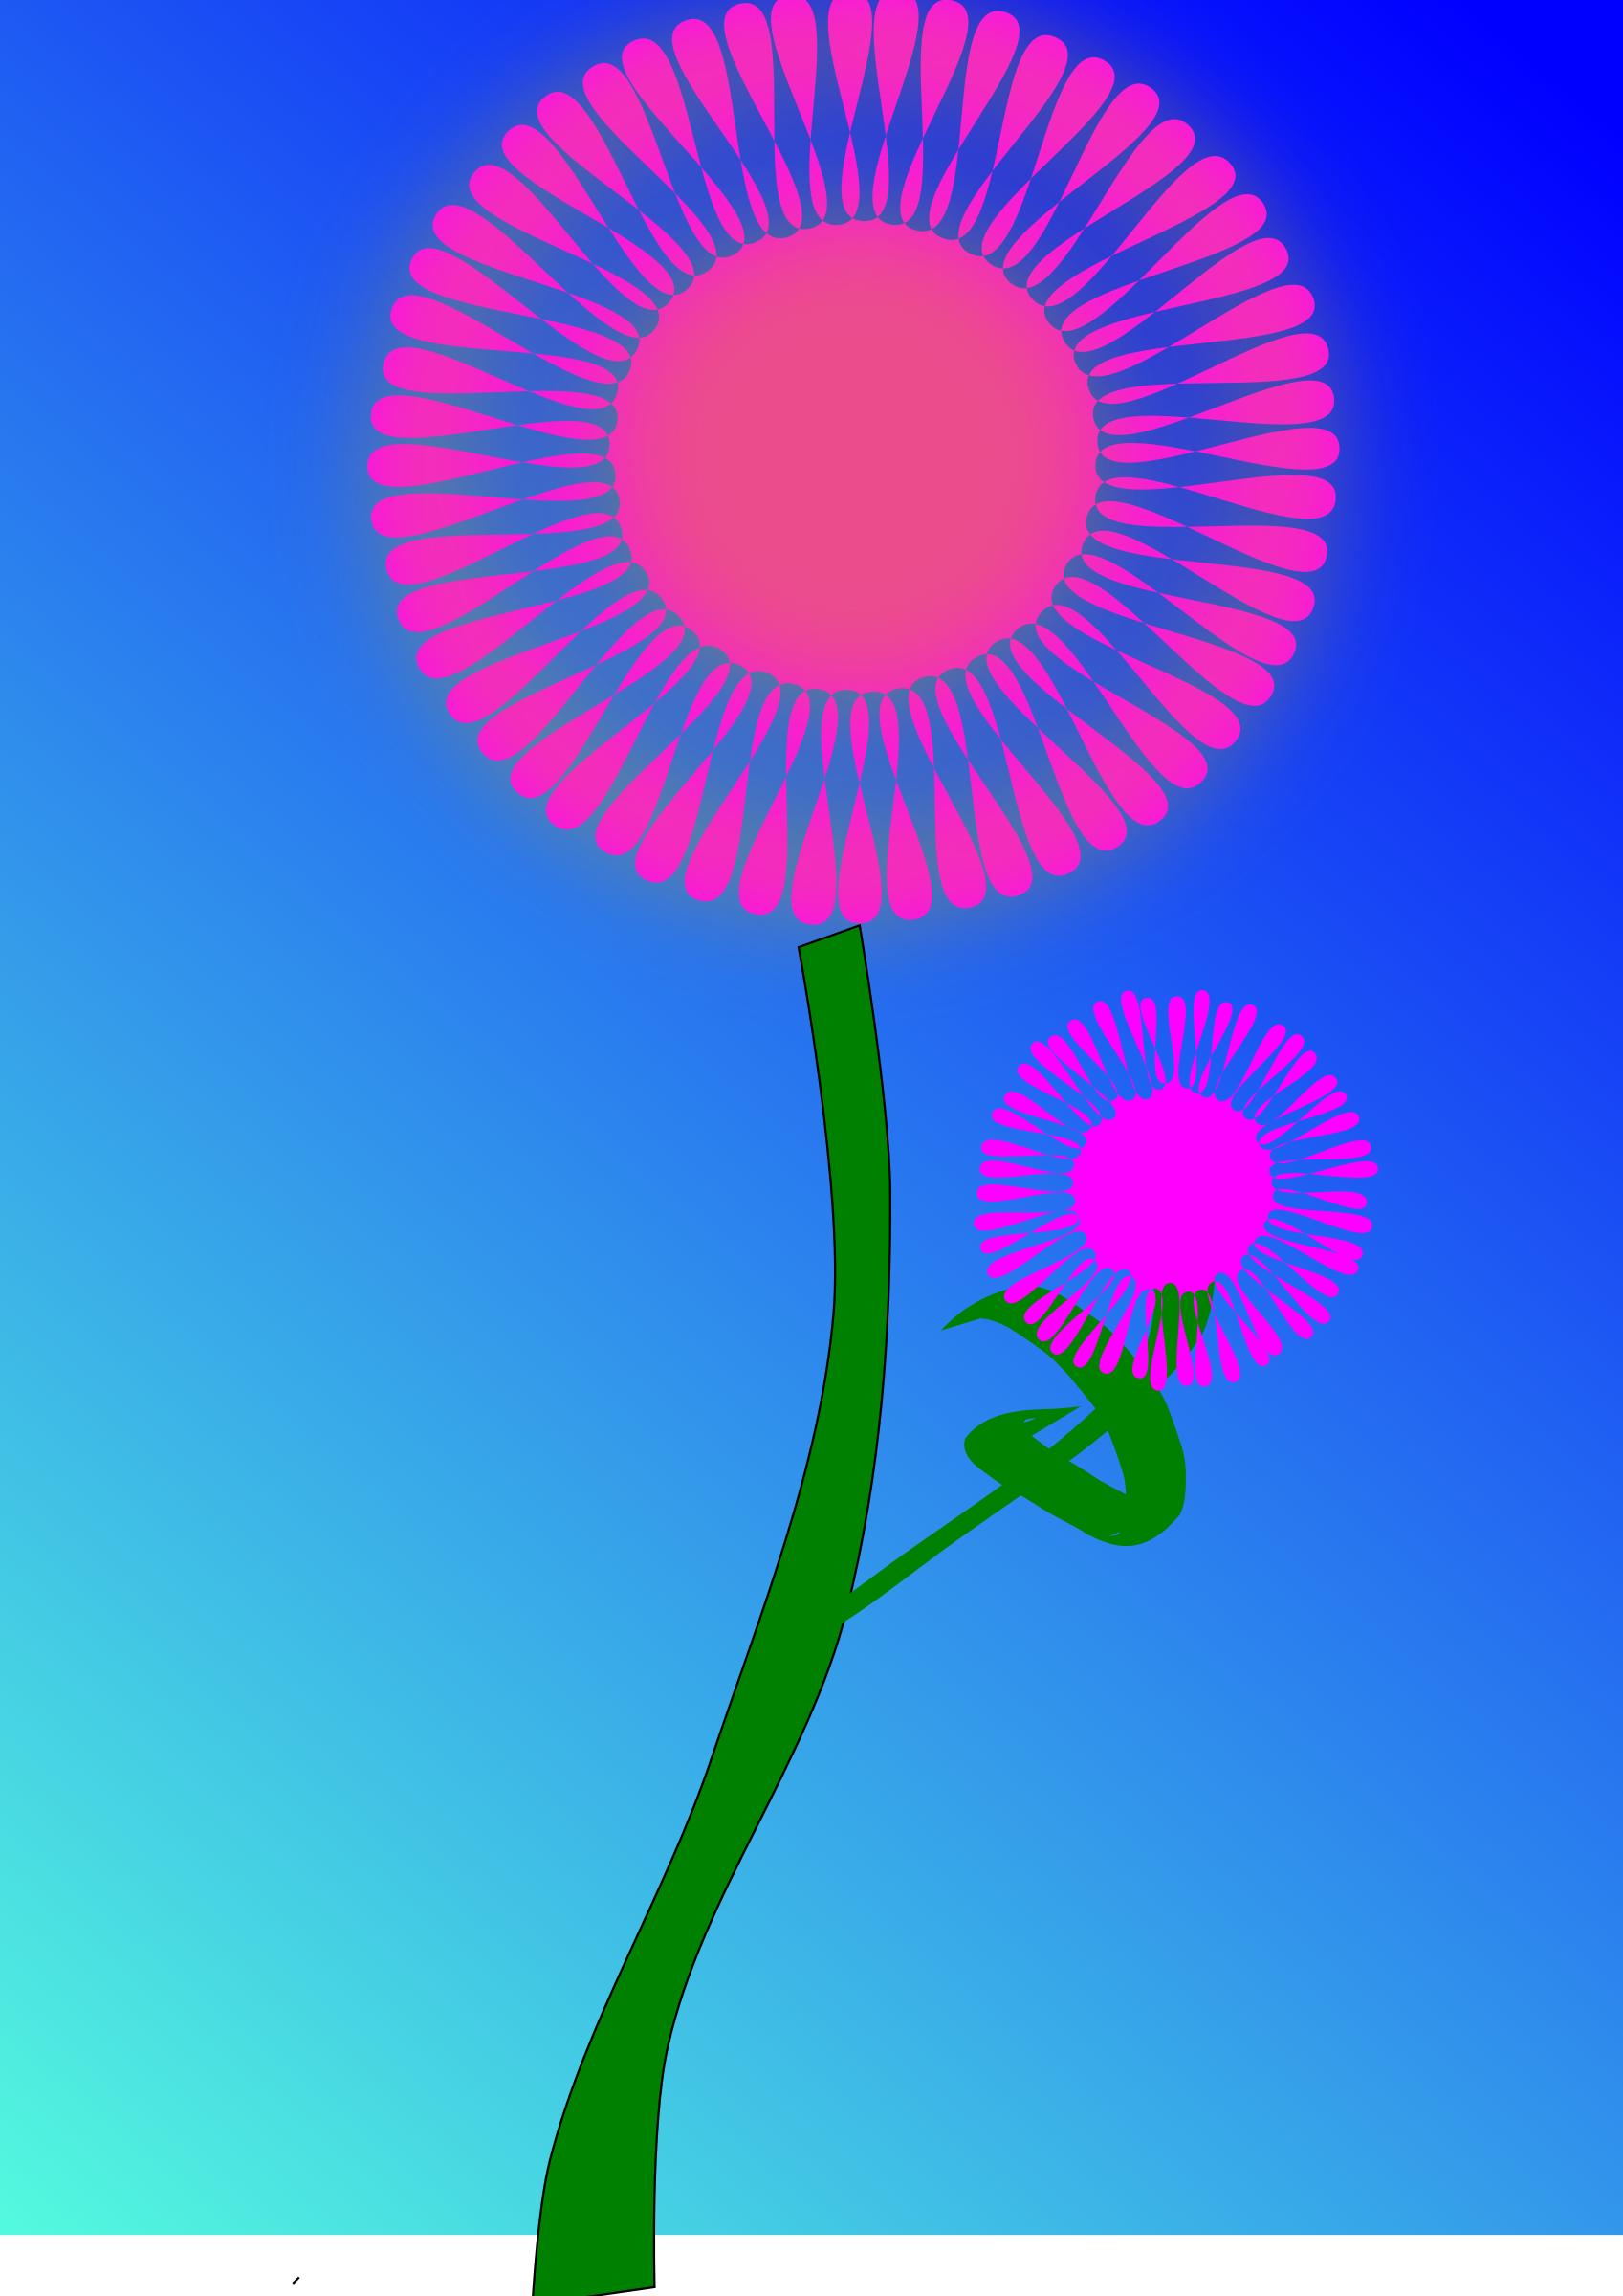 Flower by meghana.akudari@yandex.mail